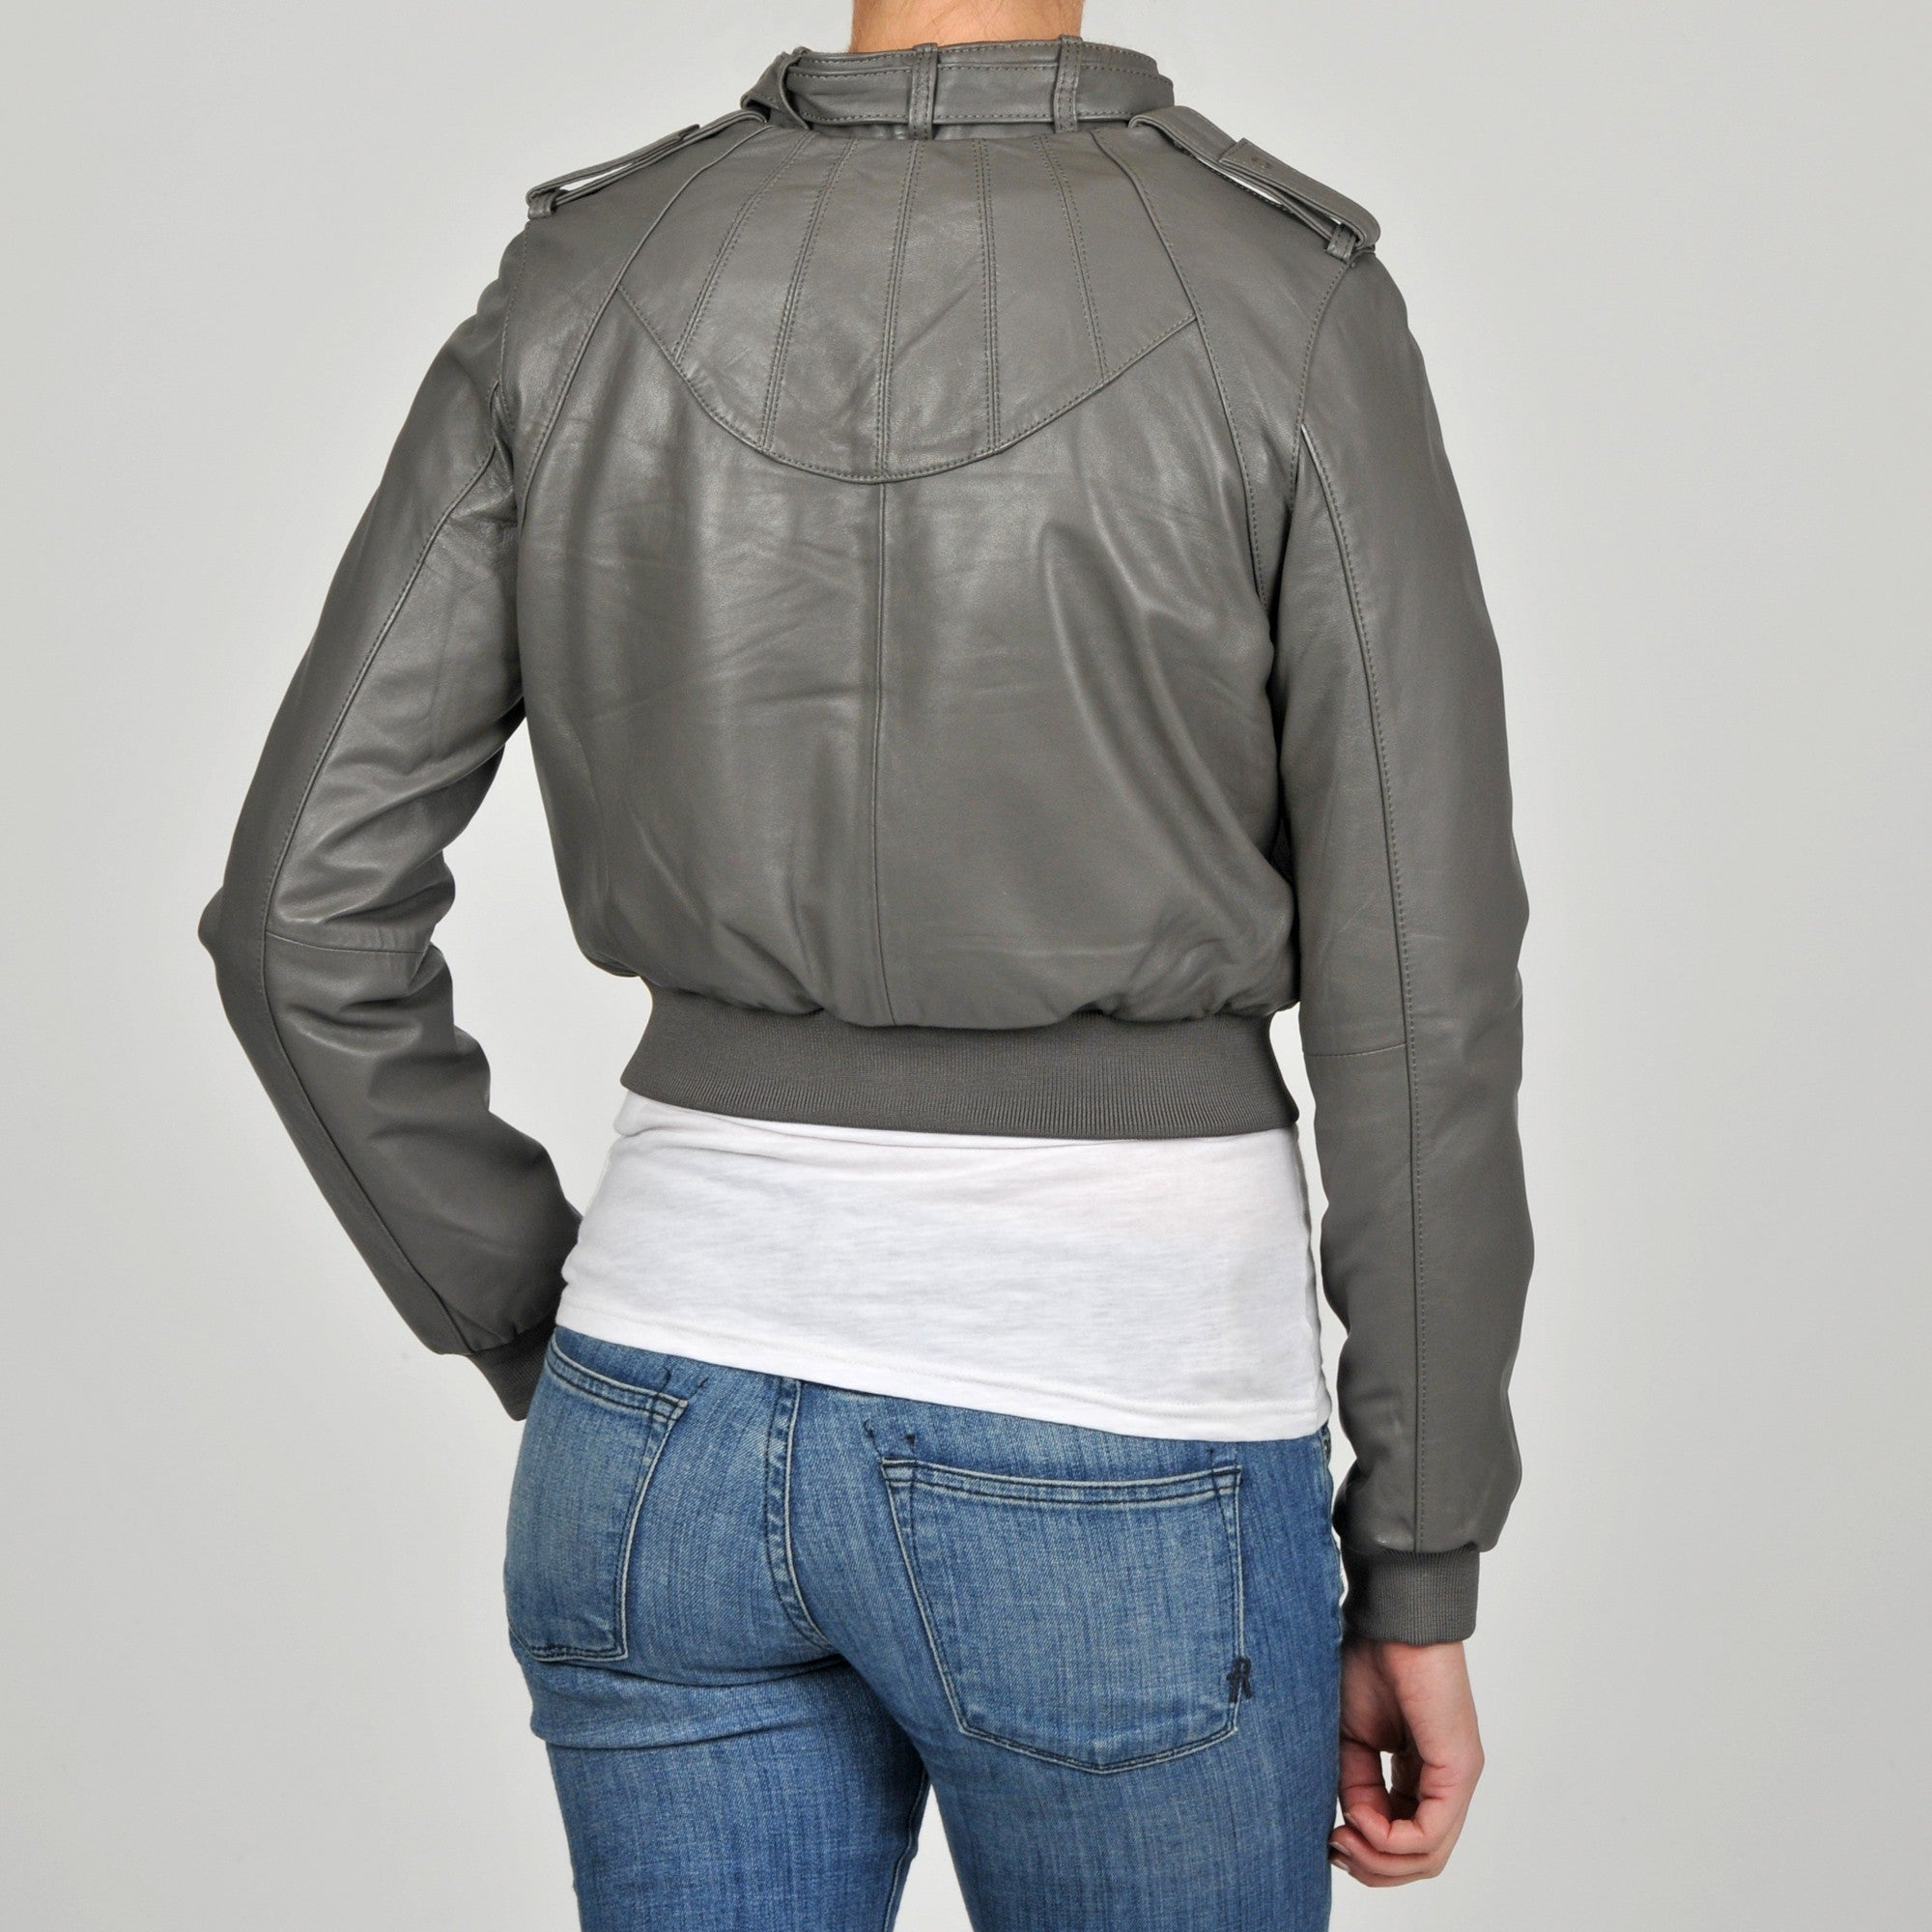 f97edb1e7721f Shop Knoles   Carter Women s Plus Size Members Only Bomber Jacket - Free  Shipping Today - Overstock - 6335870